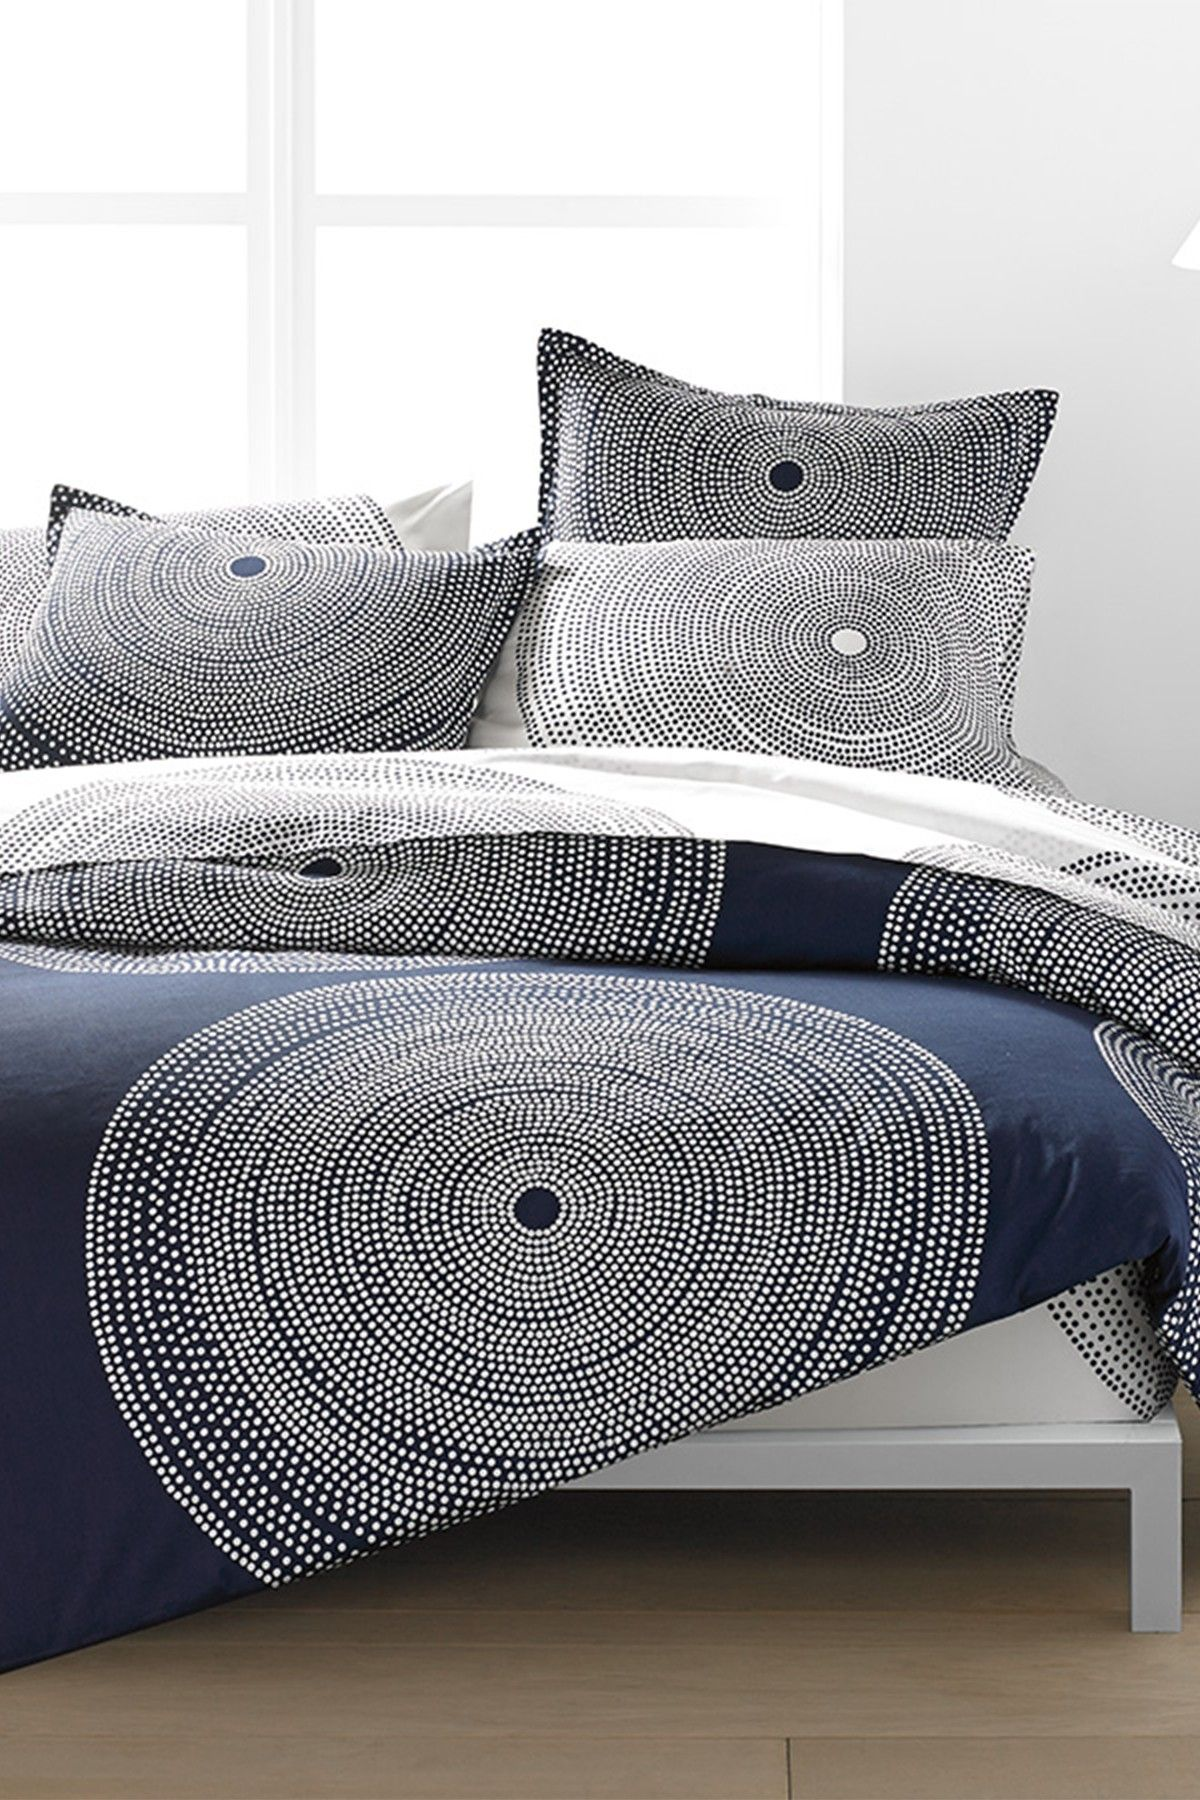 Marimekko Fokus Duvet & Sham Set - King | Sponsored by Nordstrom Rack.